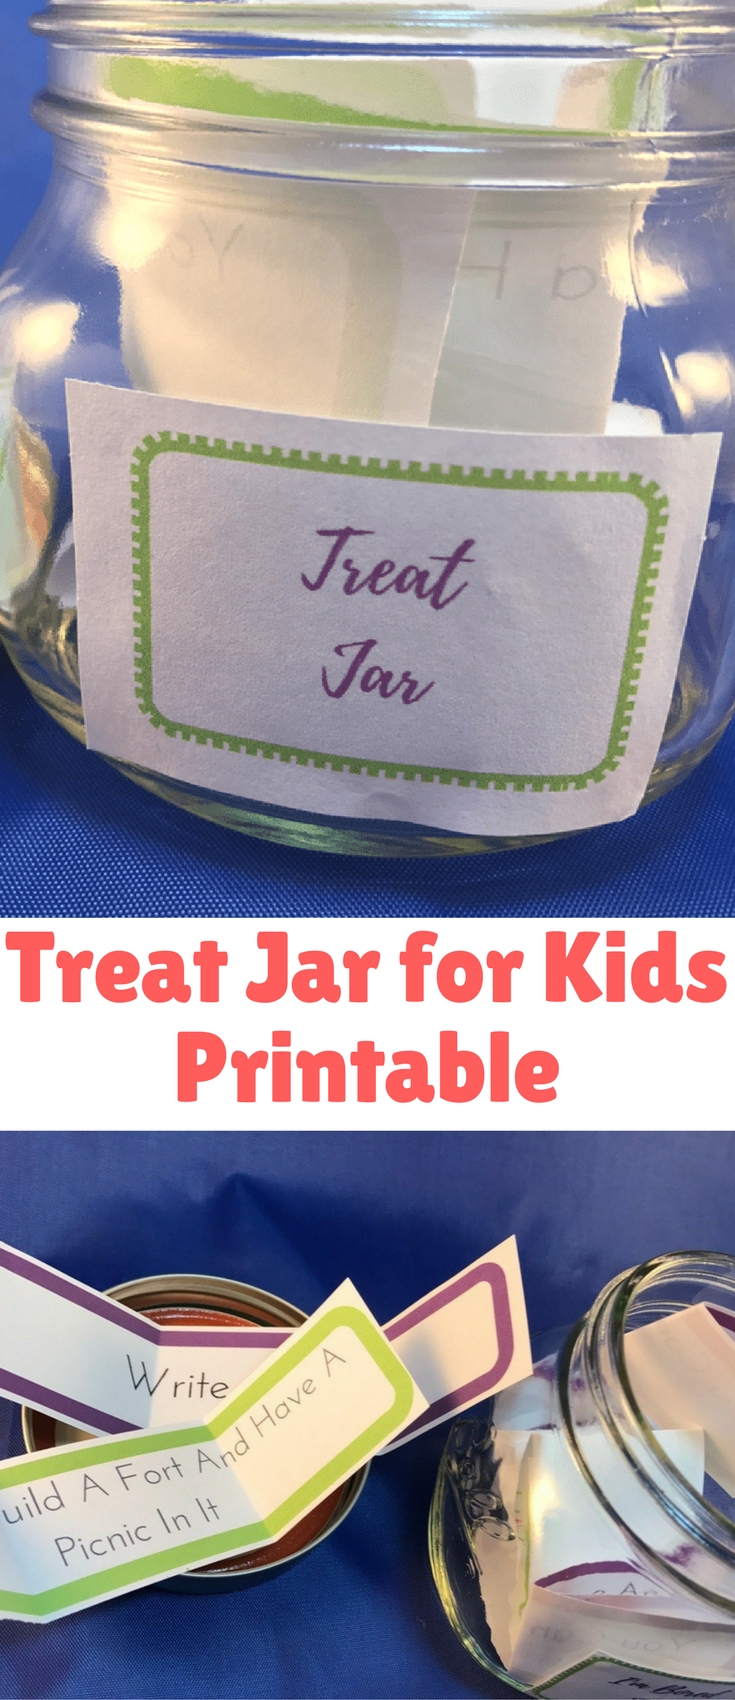 Are you looking for a fun way to motivate and encourage your kids? Check out this fun Treat Jar for Kids Printable Kit.